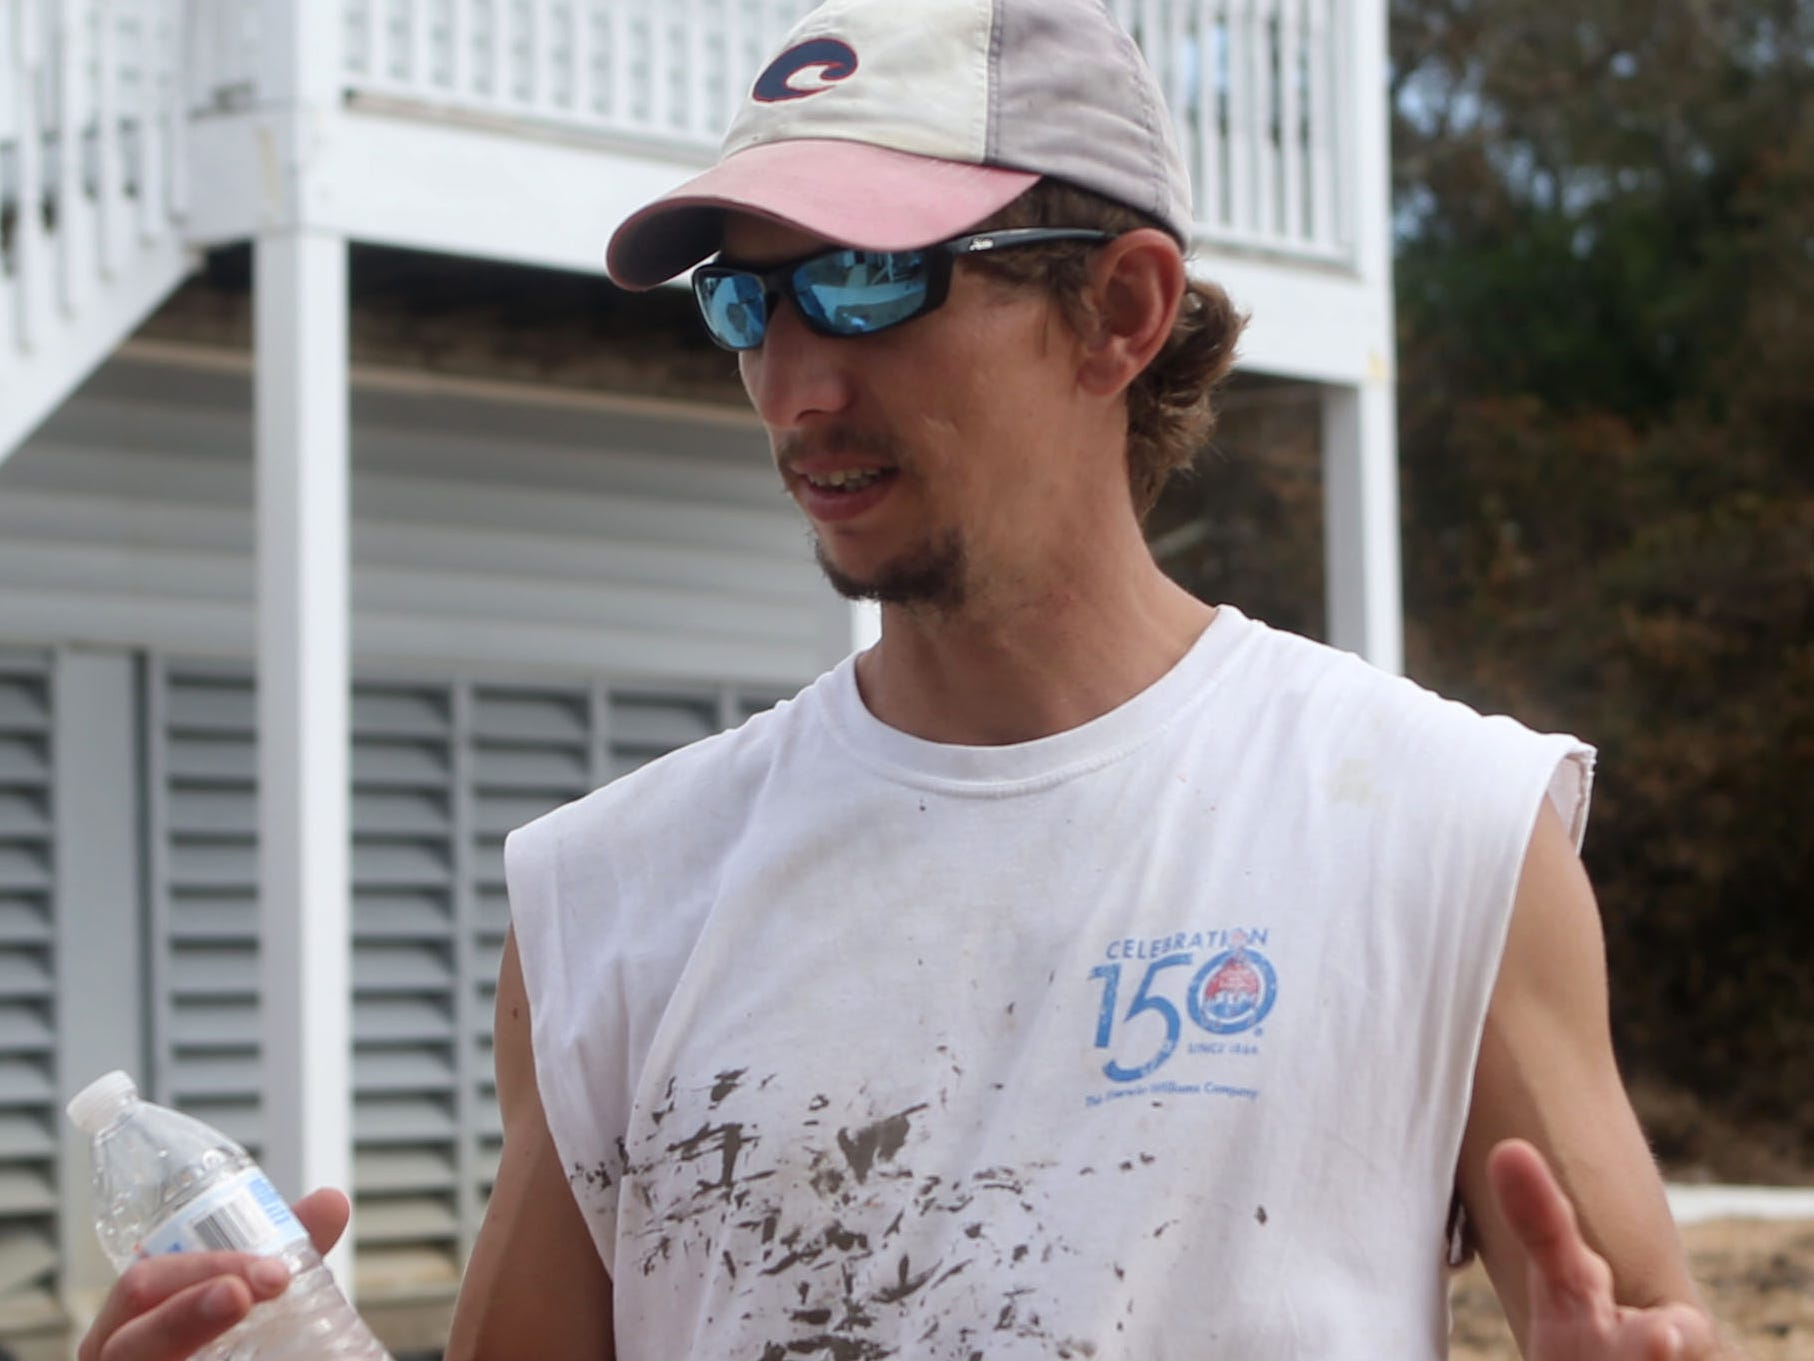 Michael Fordham speaks about his experience in Carrabelle Beach after Hurricane Michael on Monday, Oct. 15, 2018.